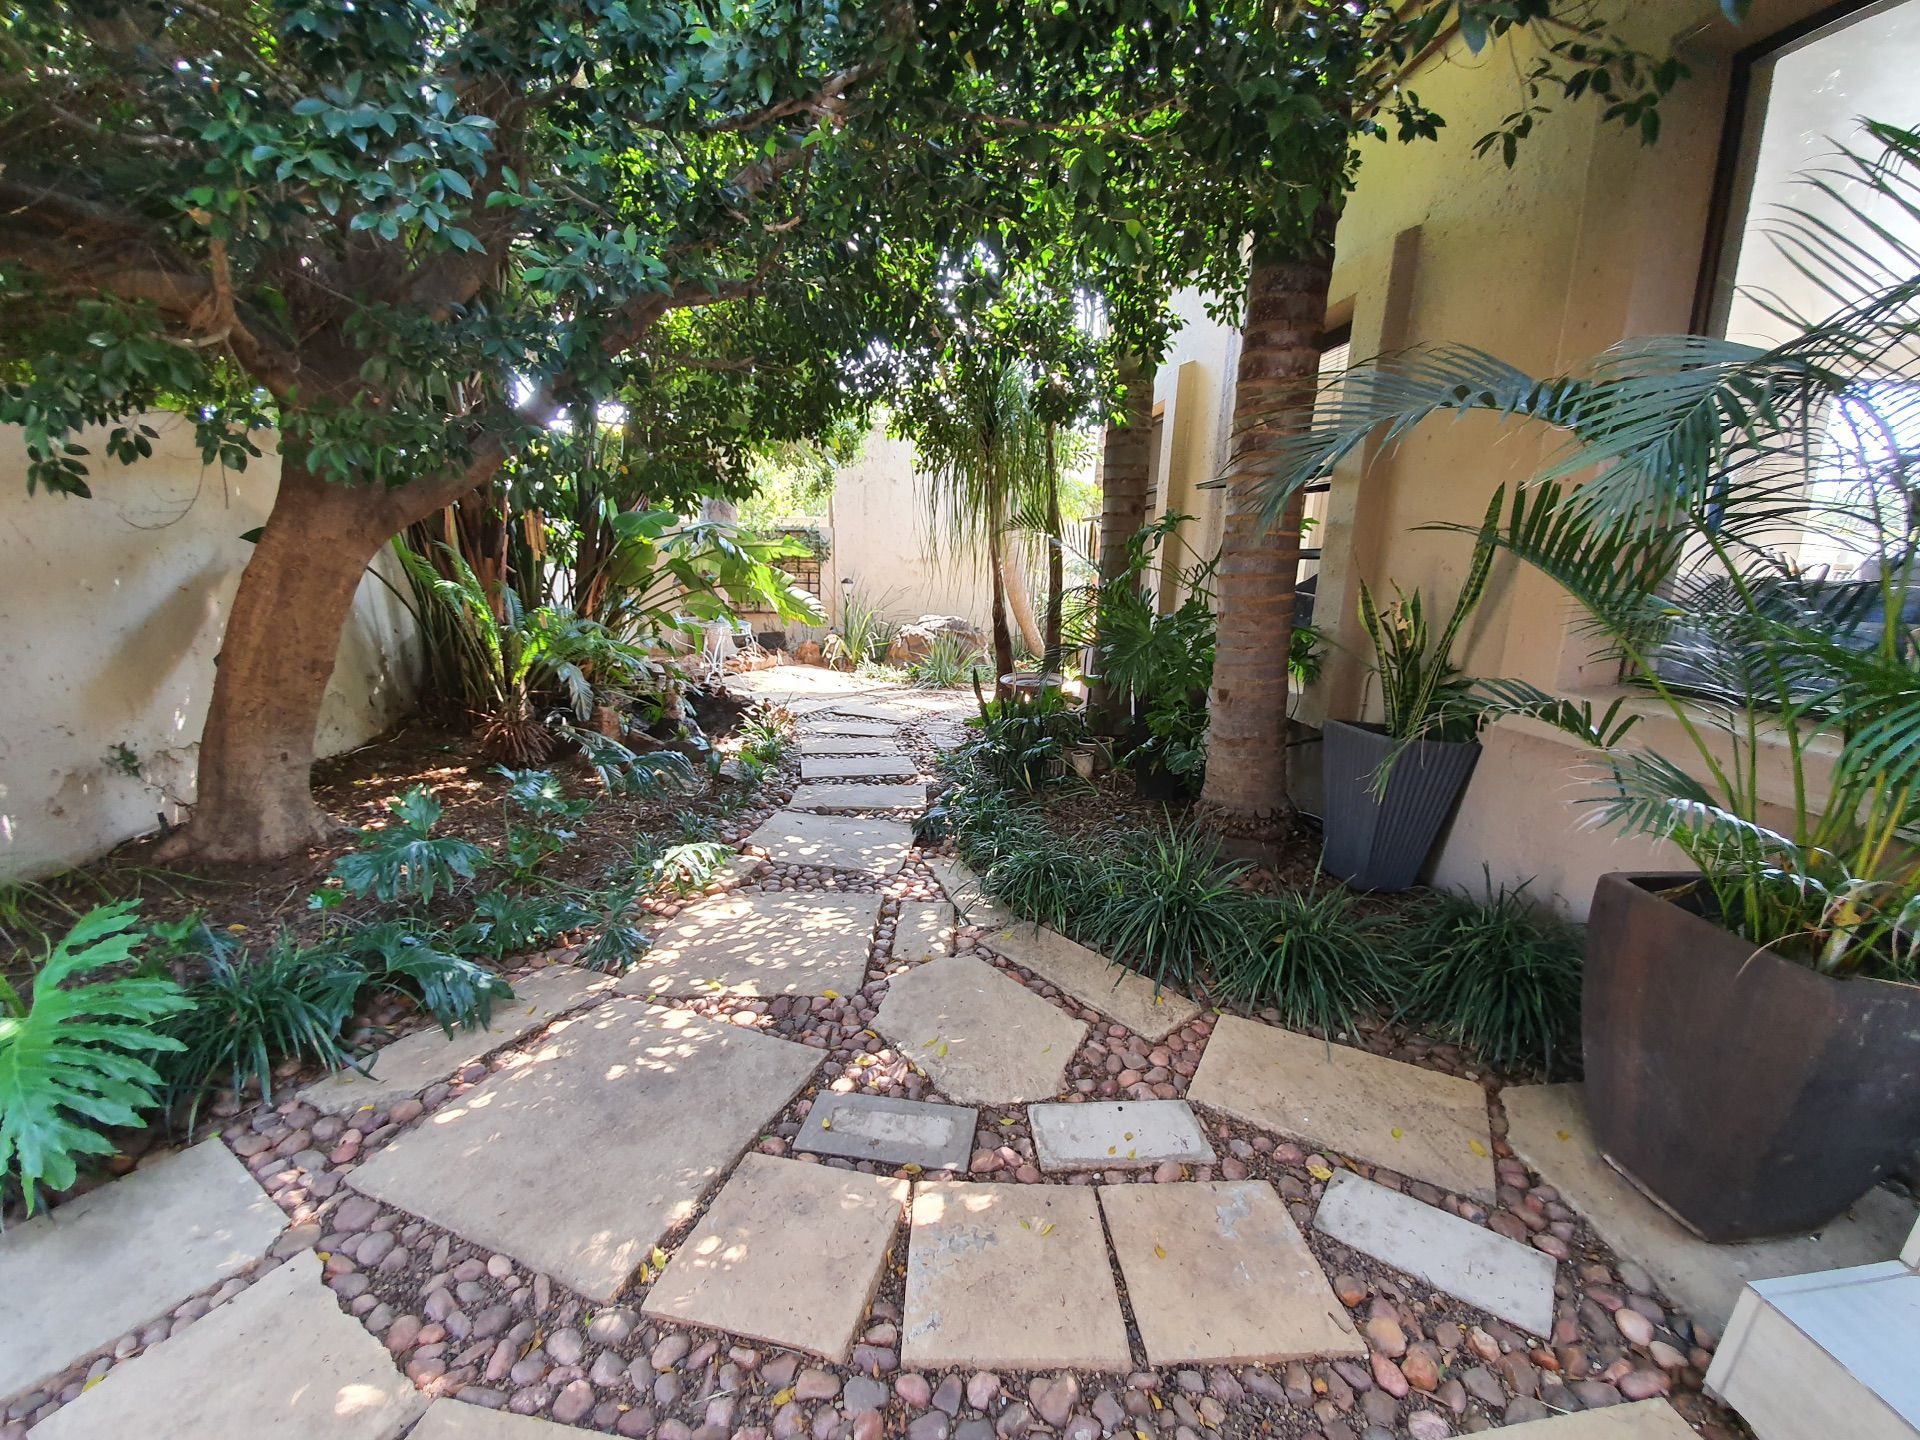 Tranquil garden at the entrance of the property